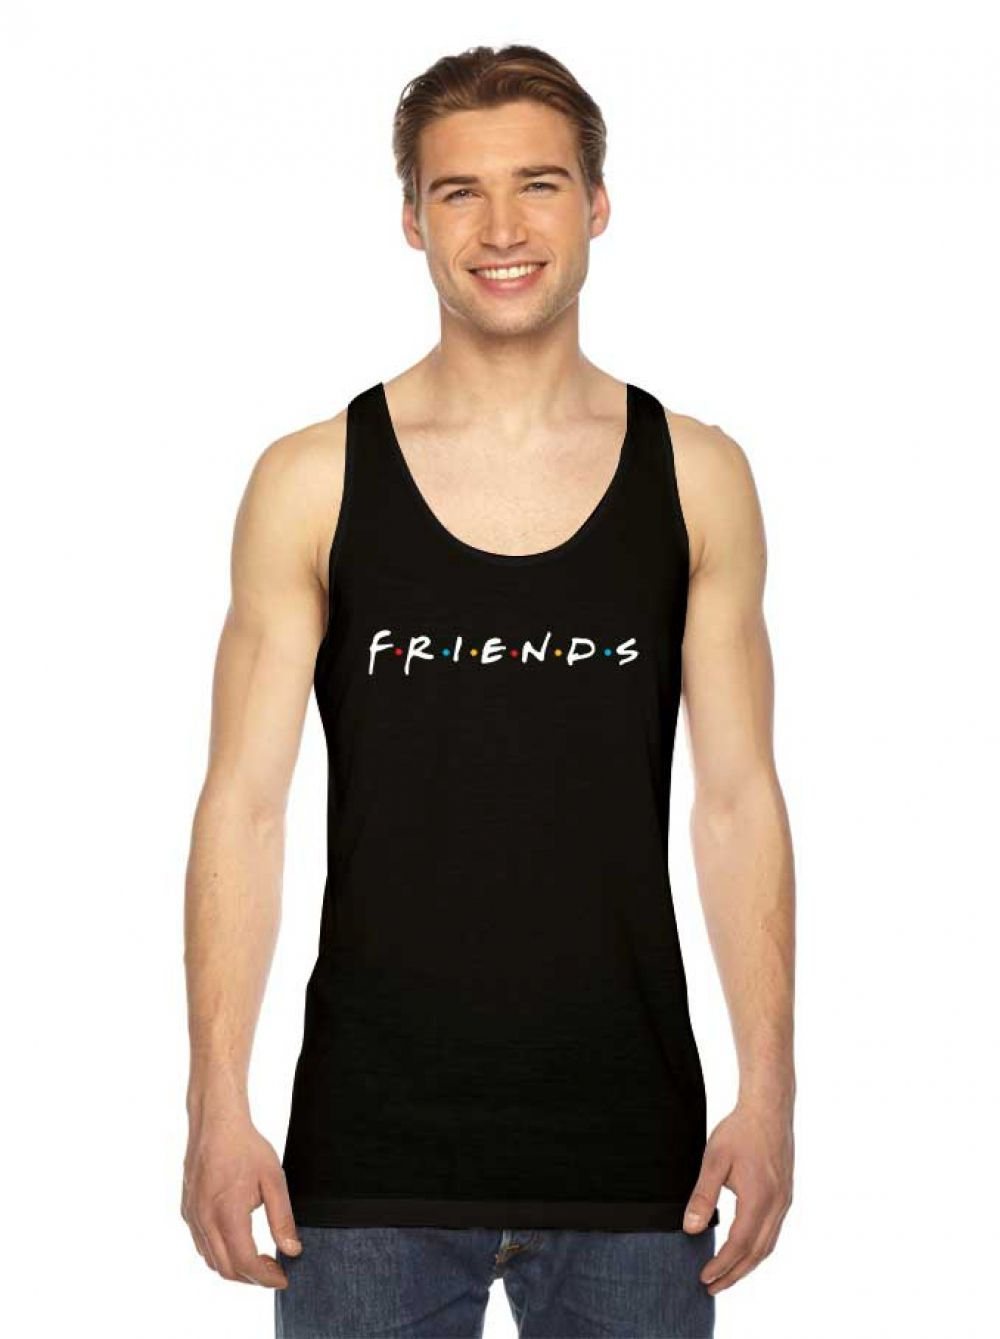 a888194b4b94 Friends Tv Show Tank Top #Tee #Hype #Outfits #Outfit #Hypebeast #